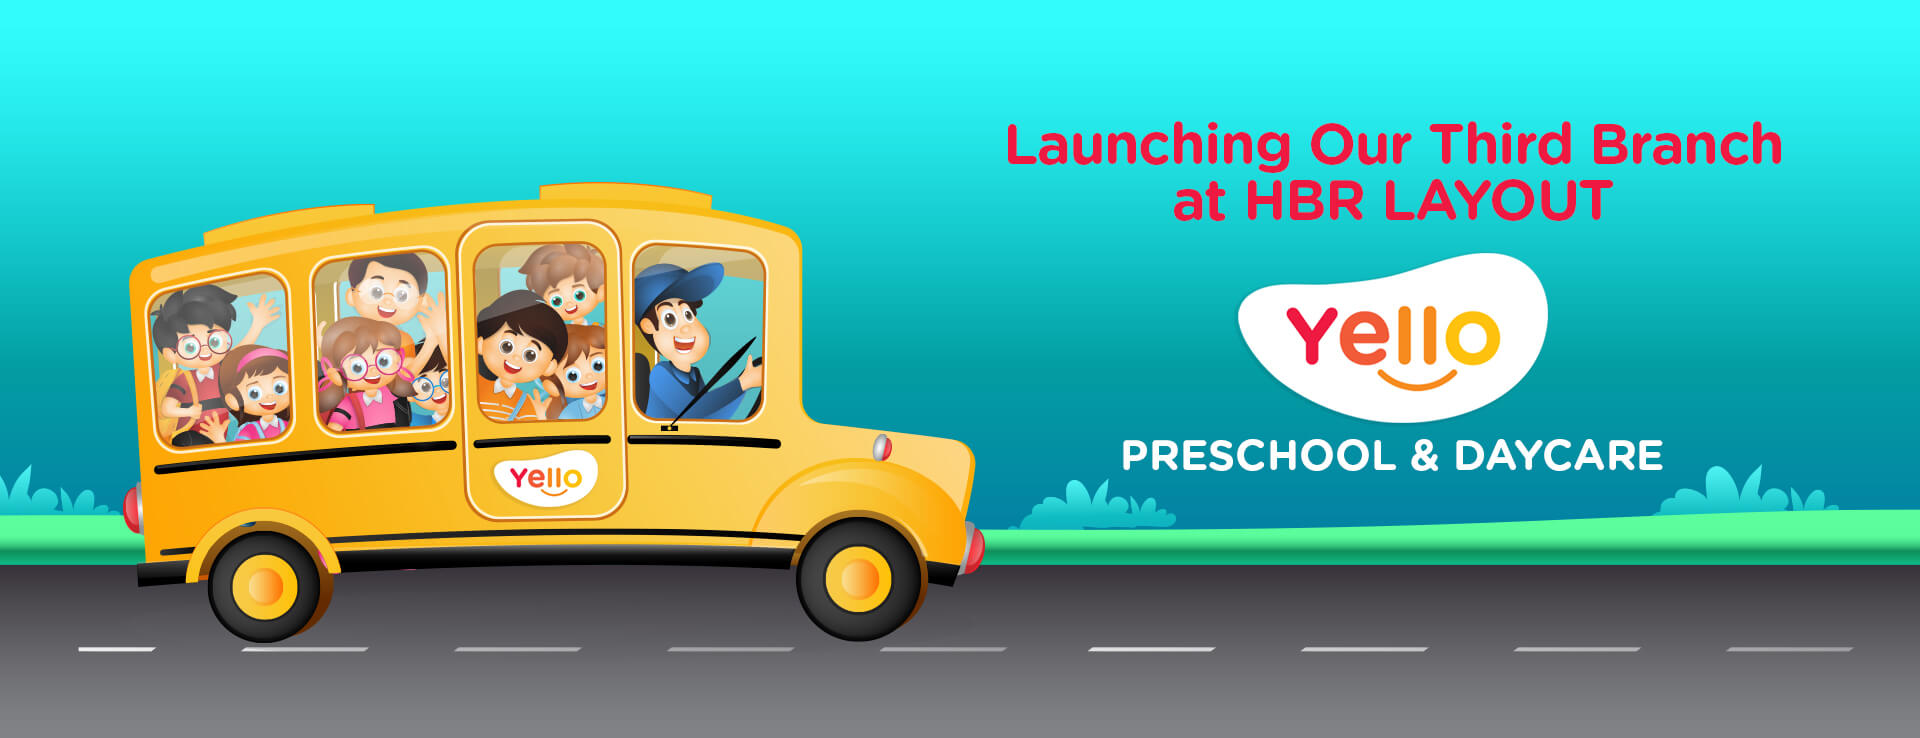 Best Preschool in HBR Layout